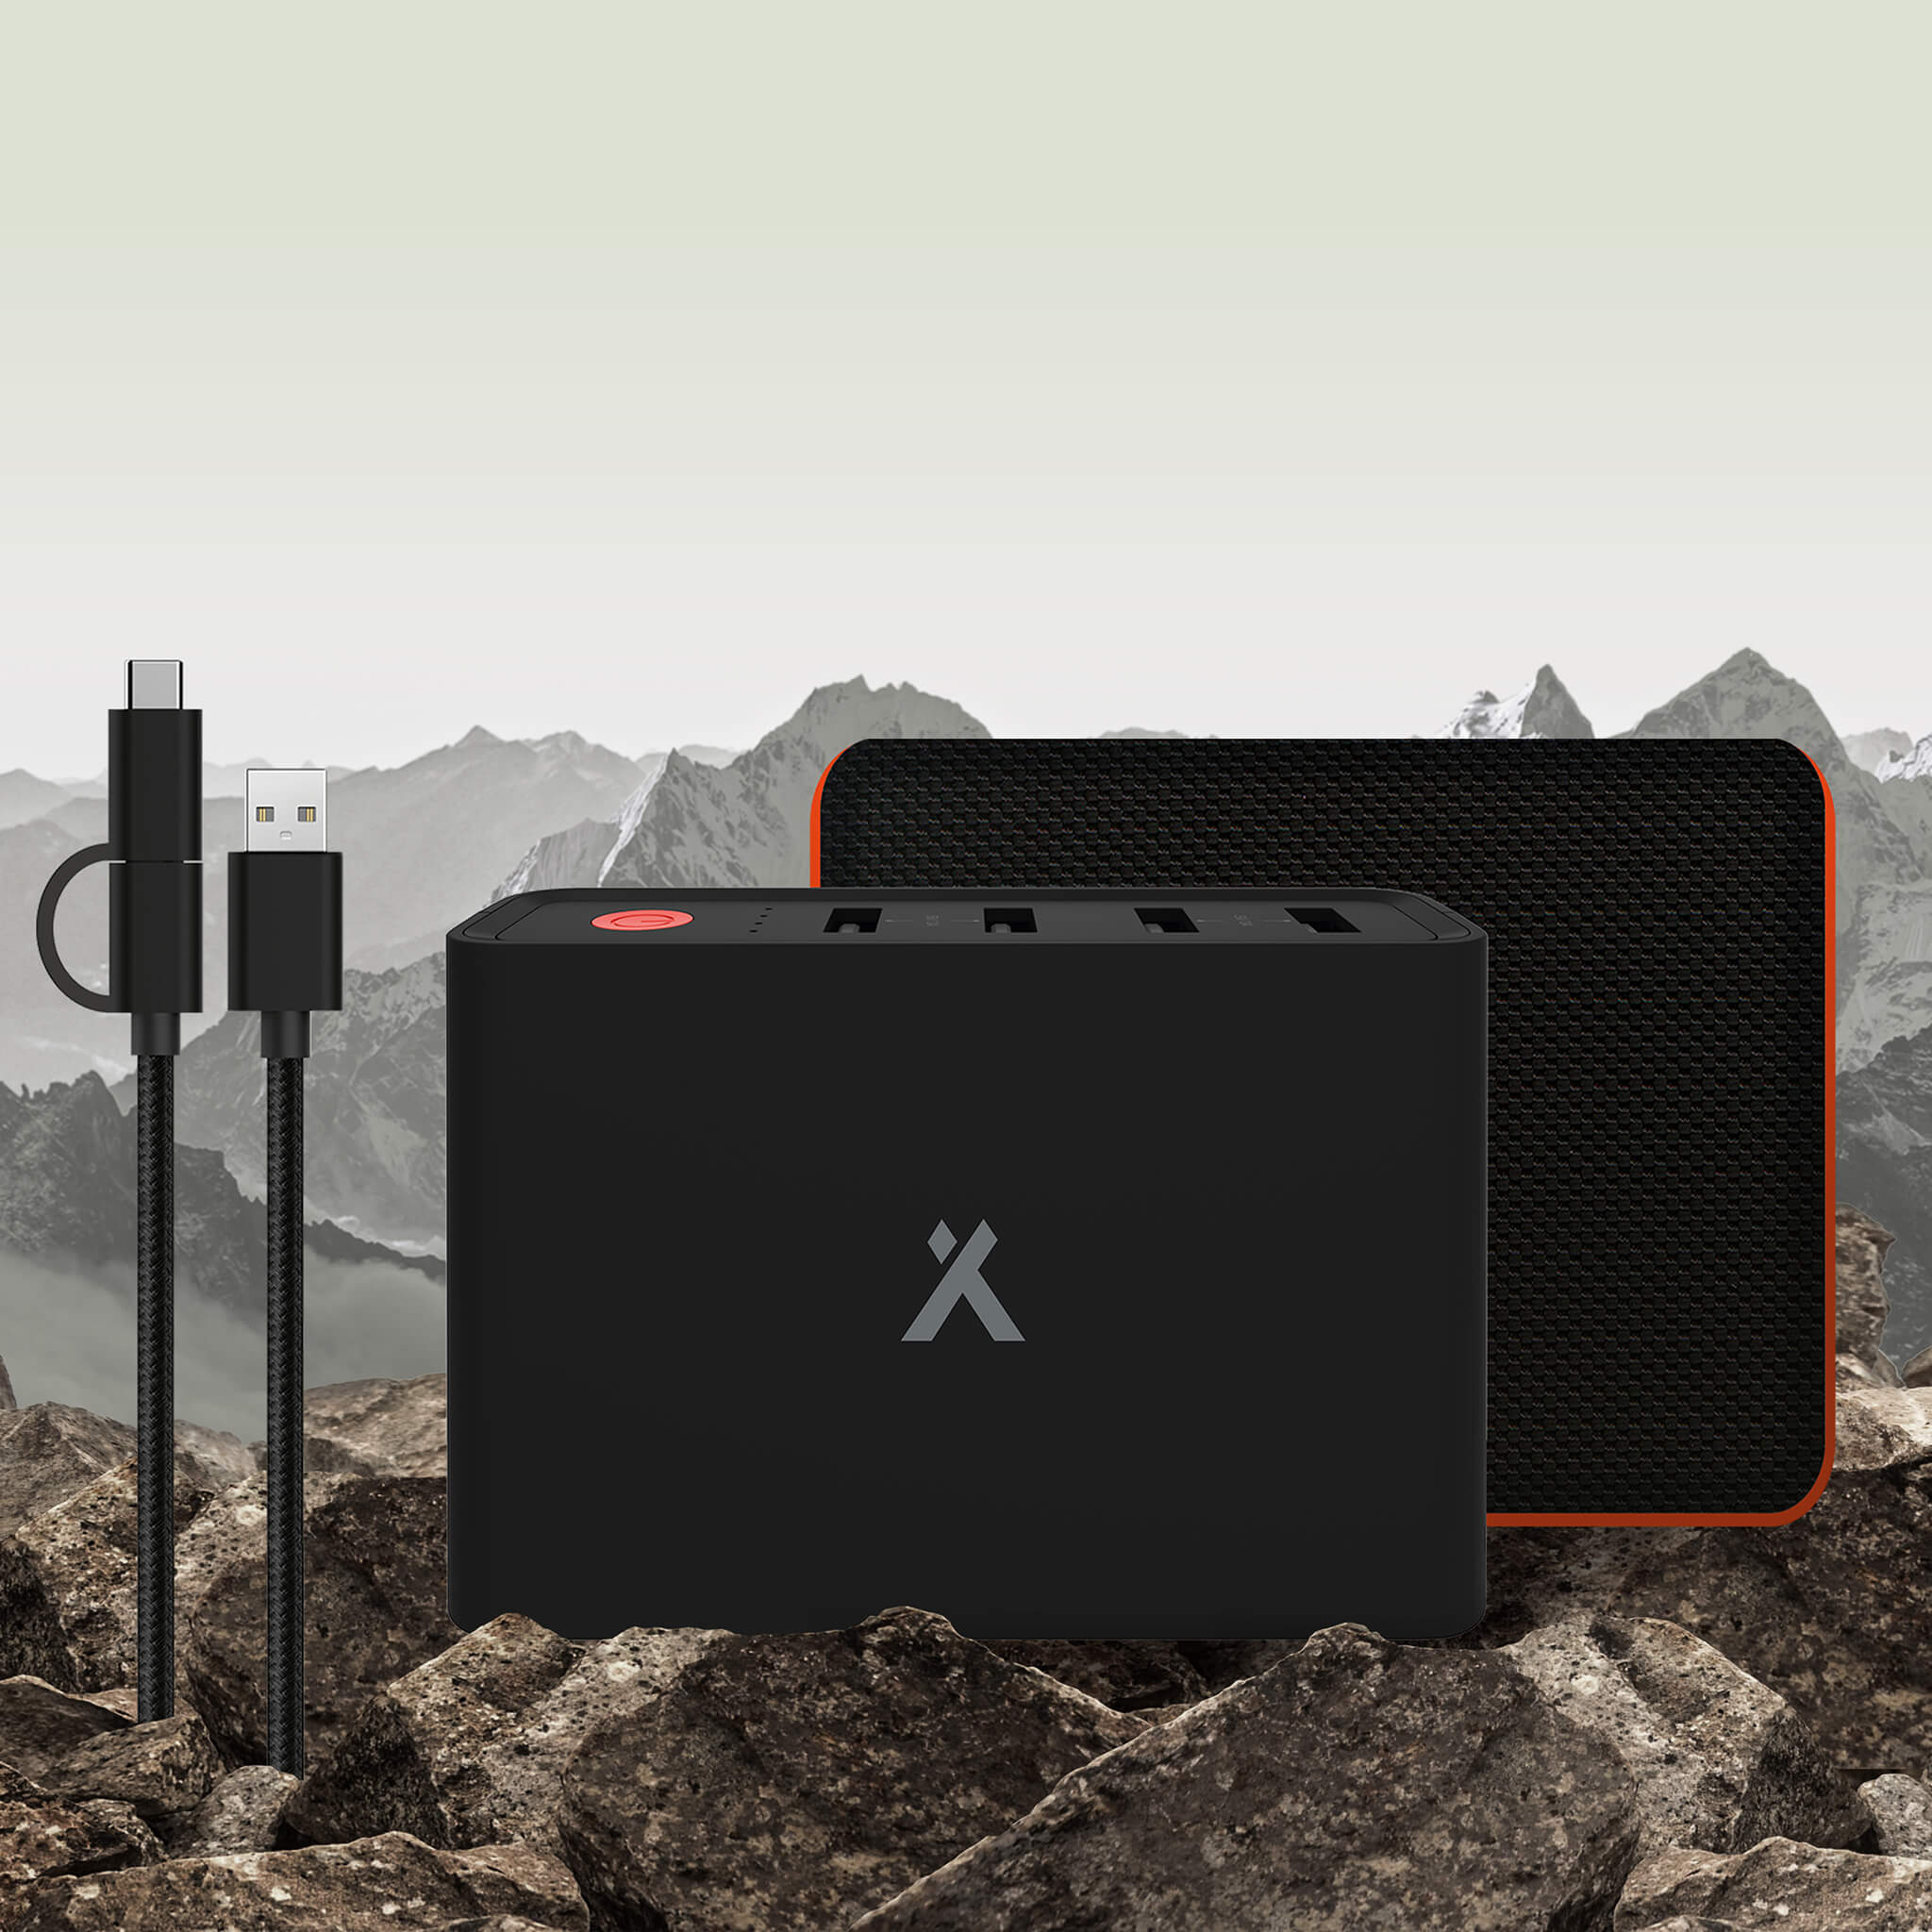 The Bear Grylls Power bank on rocks in mountain range